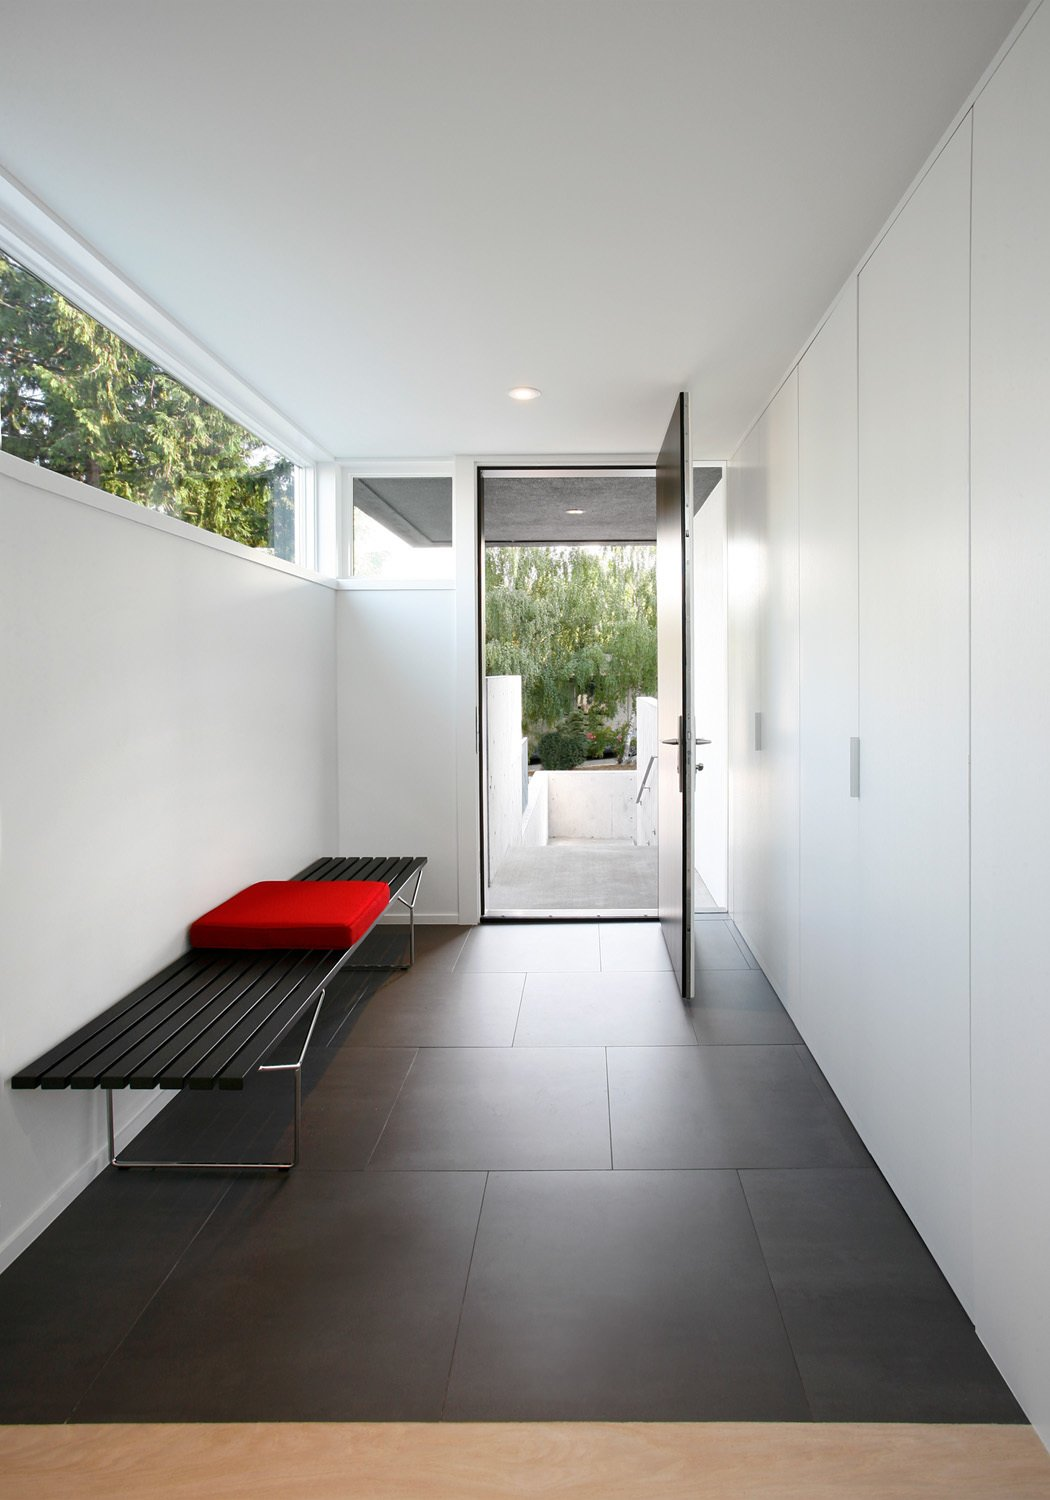 """""""A series of stepped concrete site walls lead you gradually up to a covered exterior entry, which opens onto a compressed entry foyer,"""" Hutchison says. A Bertoia bench by Knoll sits in an entryway covered by Mosa's Greys Collection tiles.  Photo 7 of 11 in 10 Fantastically Sleek Foyer Designs from Portage Bay Bungalow"""